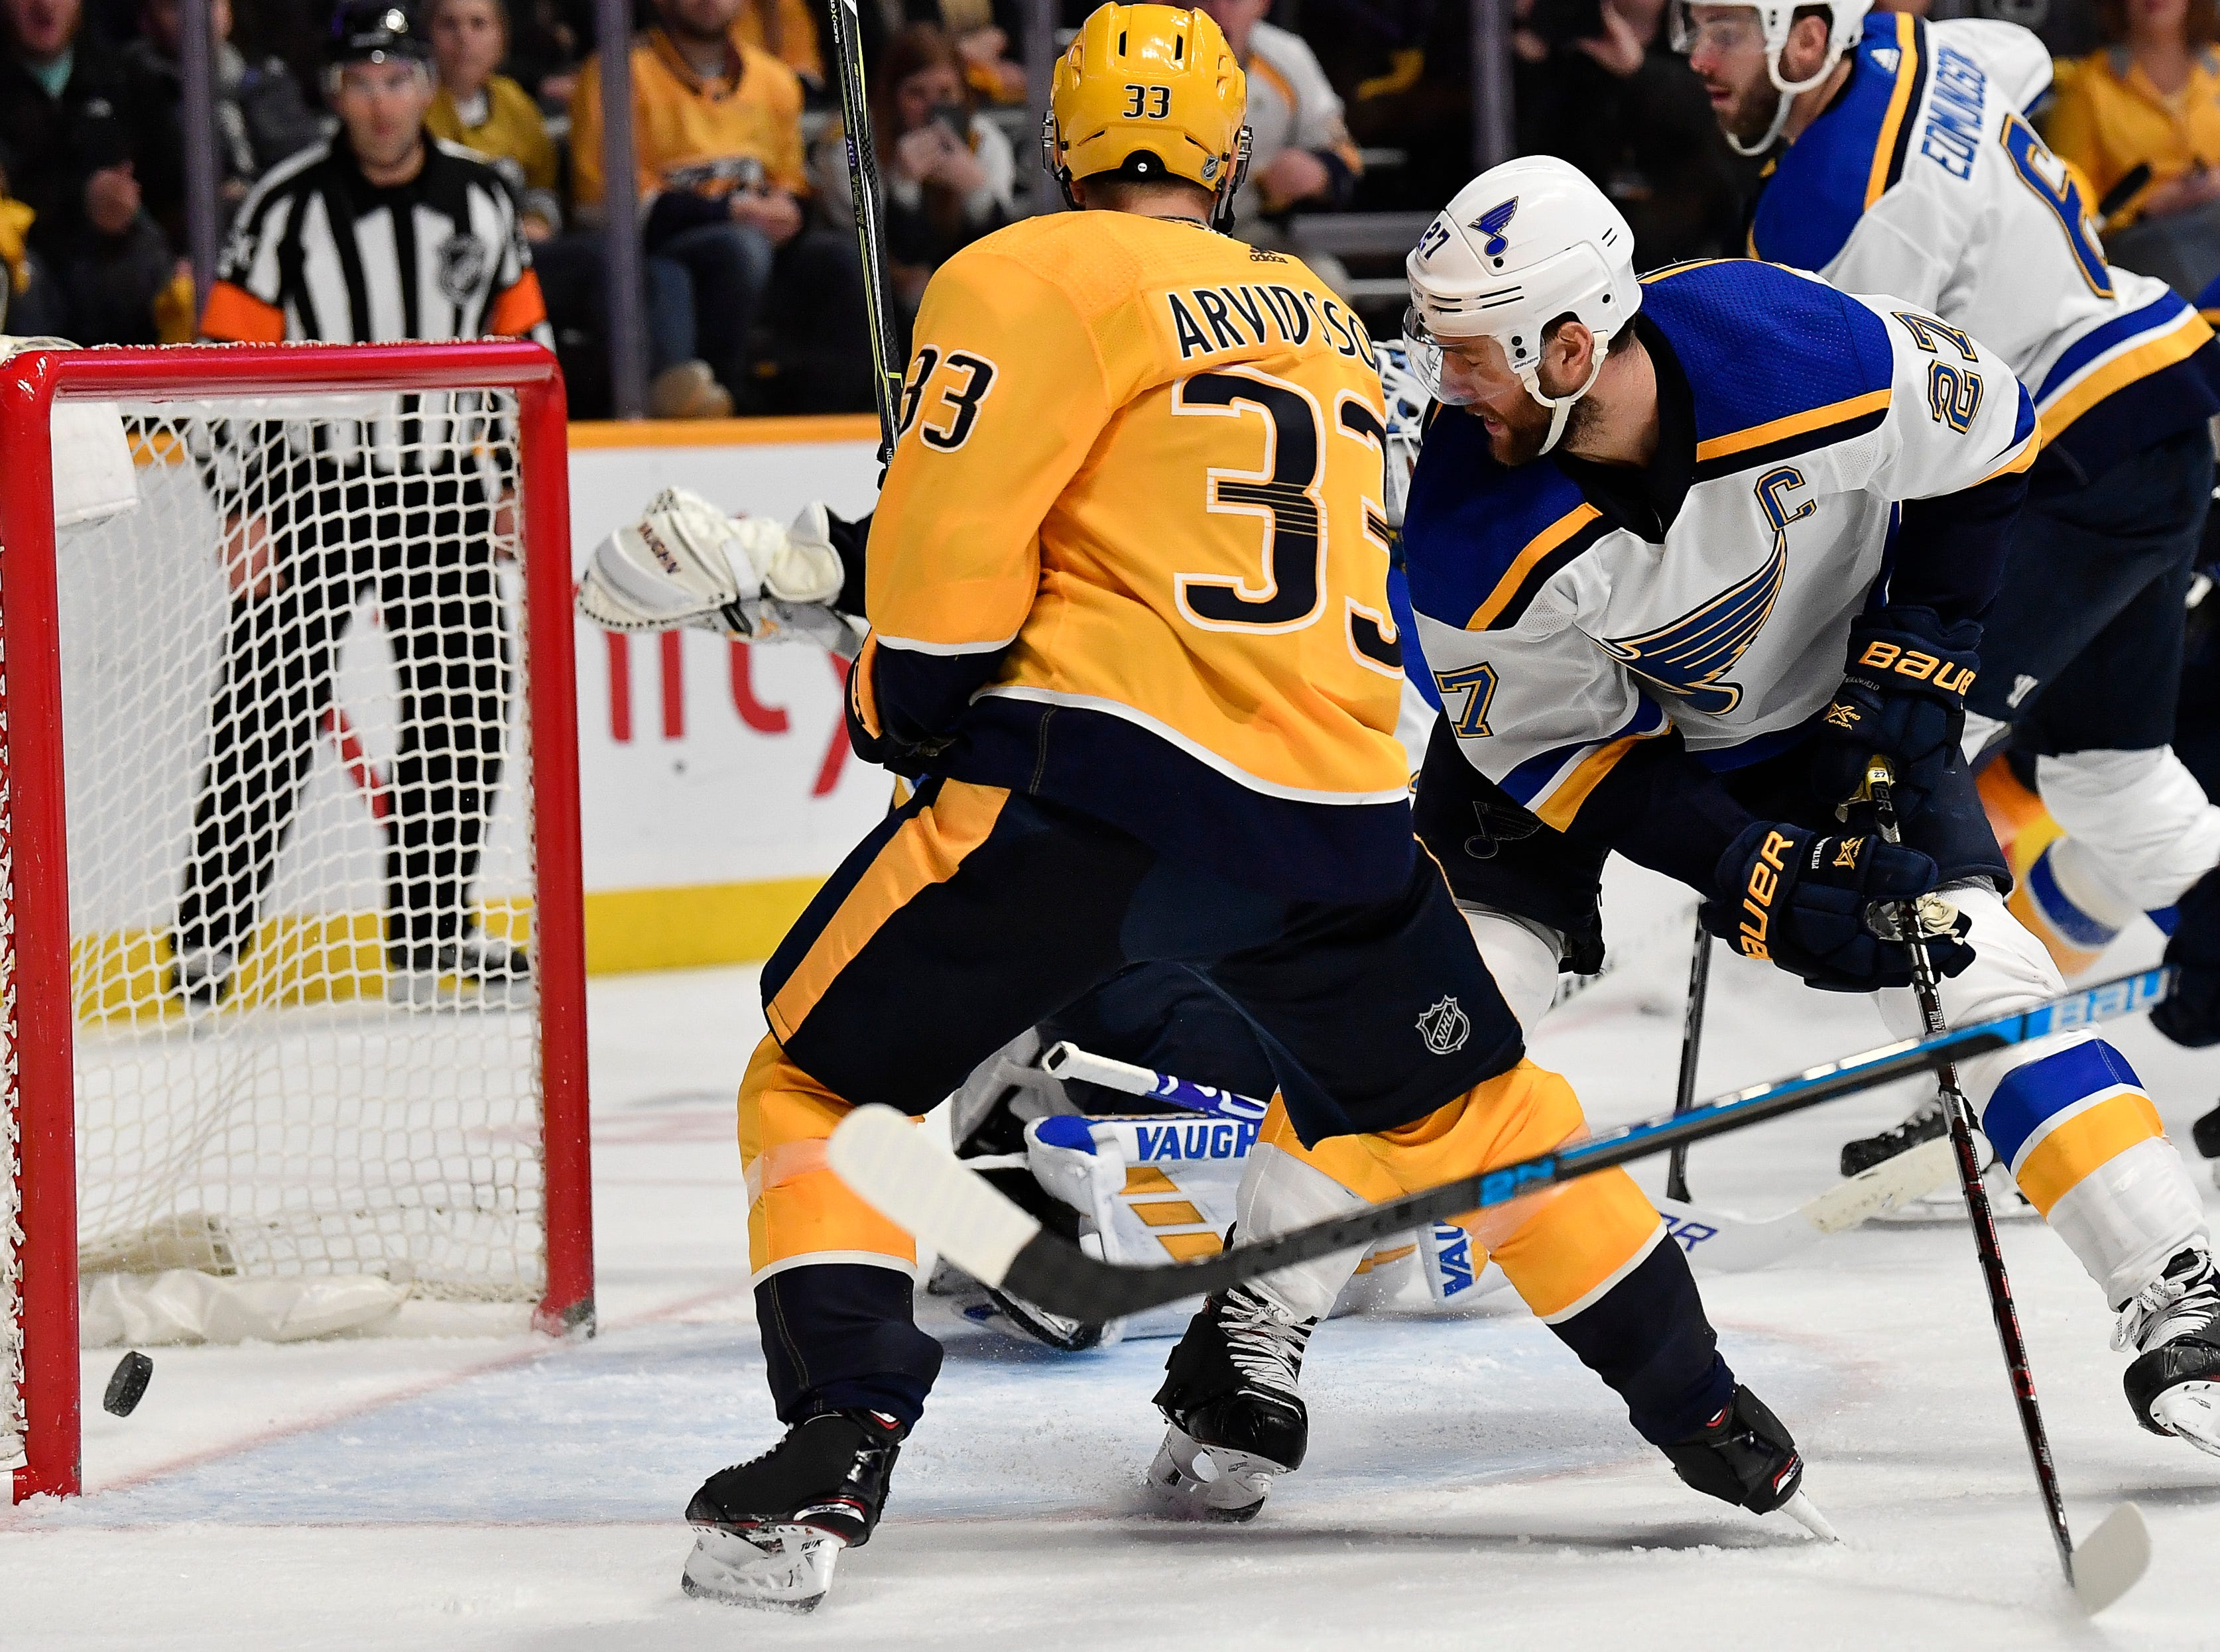 Predators right wing Viktor Arvidsson (33) shoots a goal past the Blues during the third period at Bridgestone Arena Sunday, Feb. 10, 2019 in Nashville, Tenn.